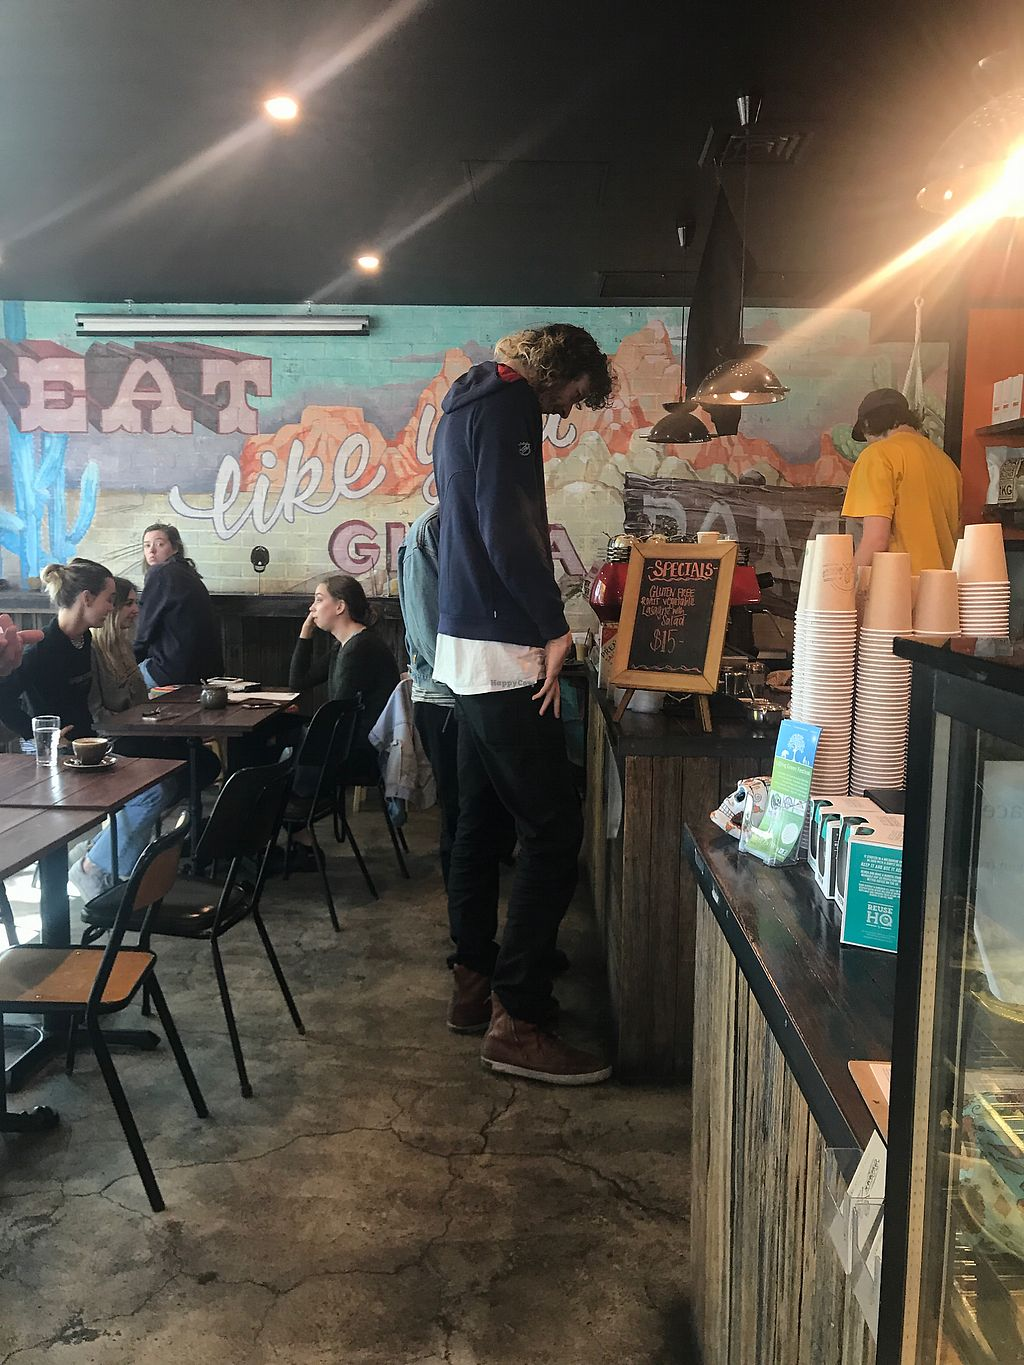 "Photo of Sweet Bones Bakery Cafe  by <a href=""/members/profile/Lozcriston"">Lozcriston</a> <br/>Inside <br/> October 2, 2017  - <a href='/contact/abuse/image/35928/311180'>Report</a>"